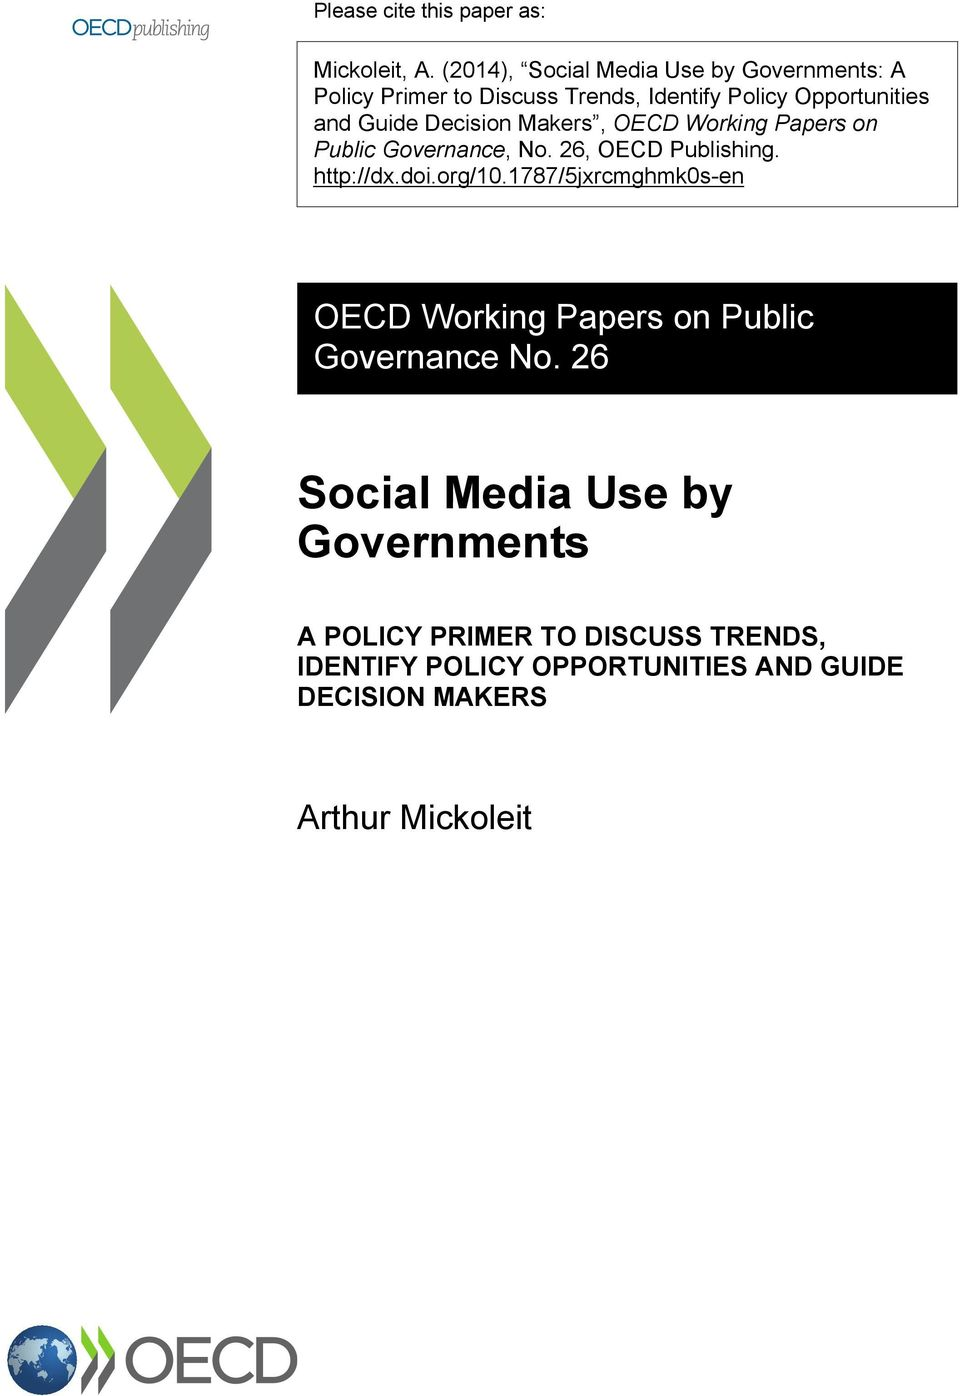 Decisin Makers, OECD Wrking Papers n Public Gvernance, N. 26, OECD Publishing. http://dx.di.rg/10.